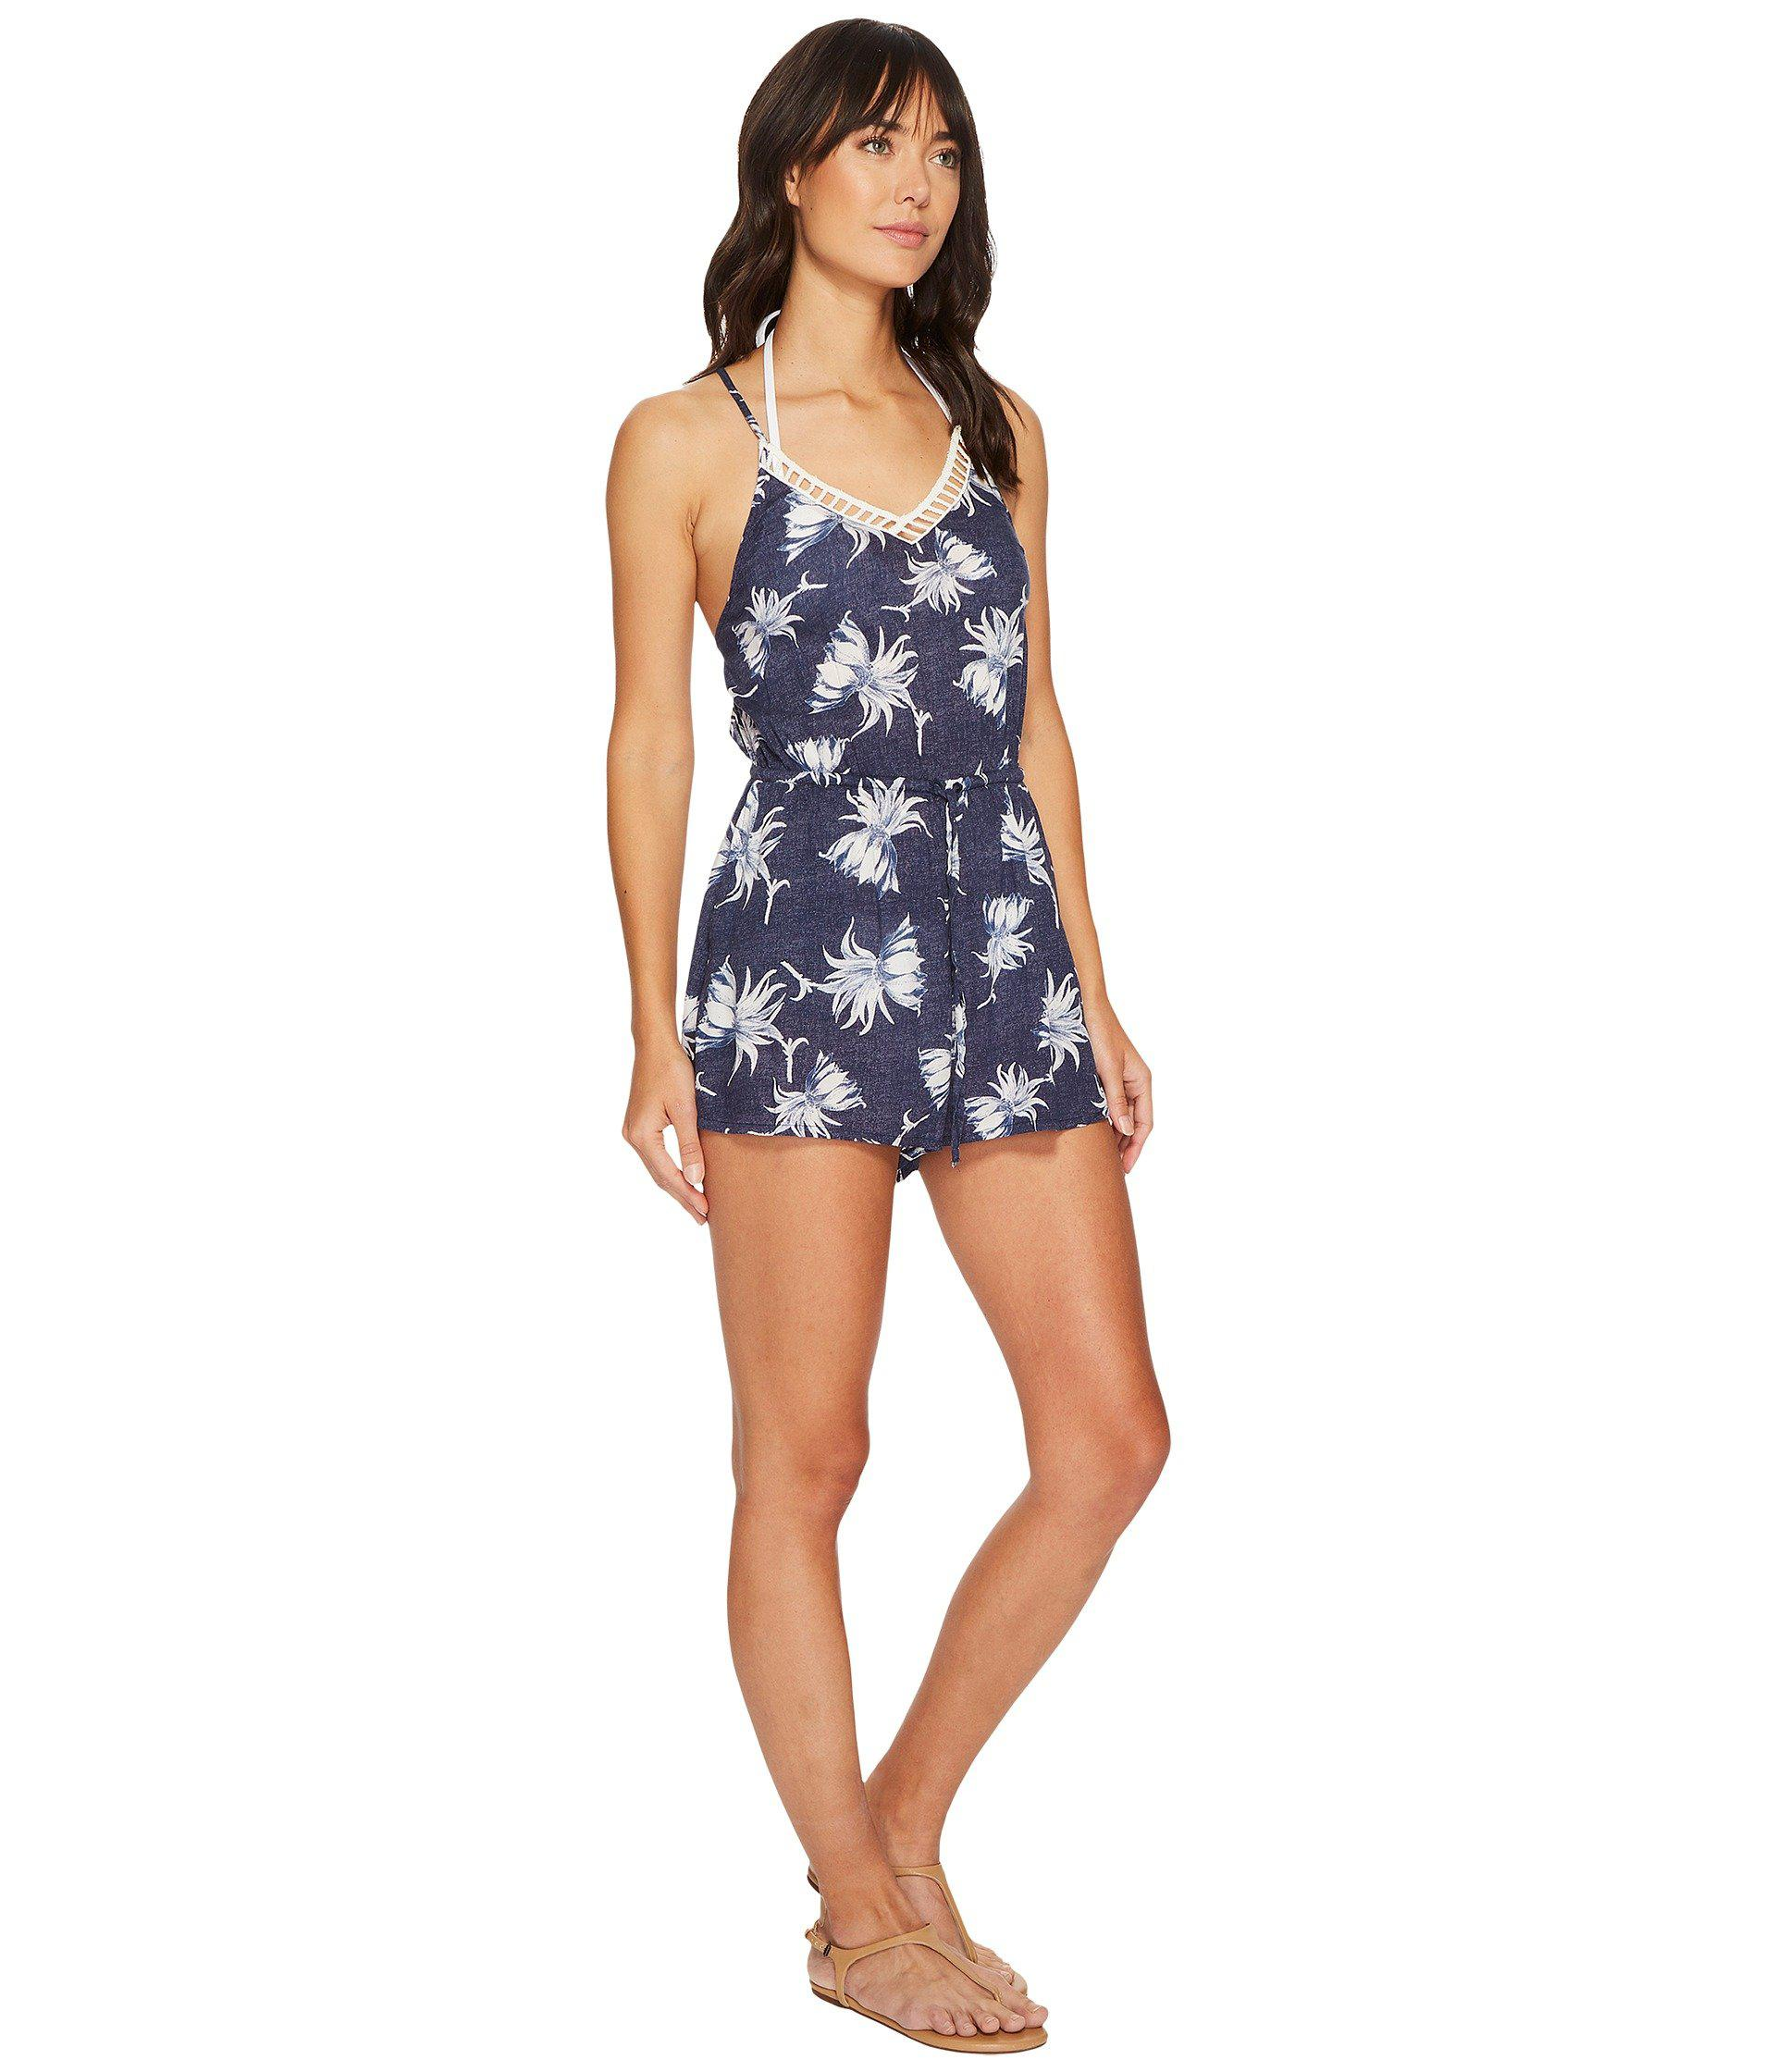 2a4d900d9d77 Roxy Hippy Hour Romper Cover-up in Blue - Lyst